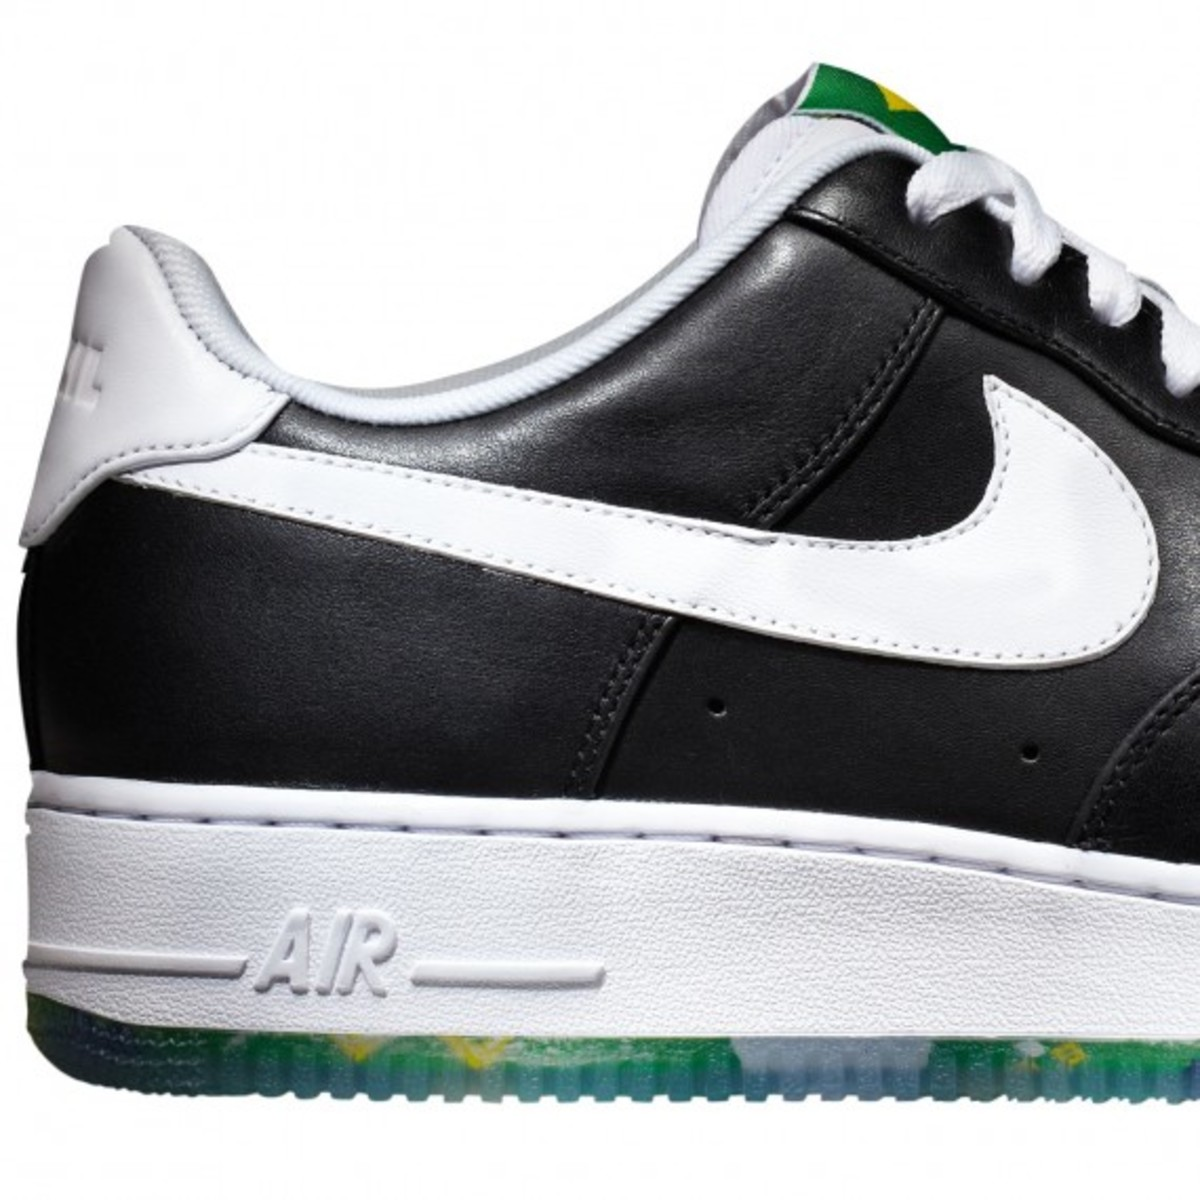 Nike Air Force 1 Low Boys' Toddler Basketball Shoes White/White